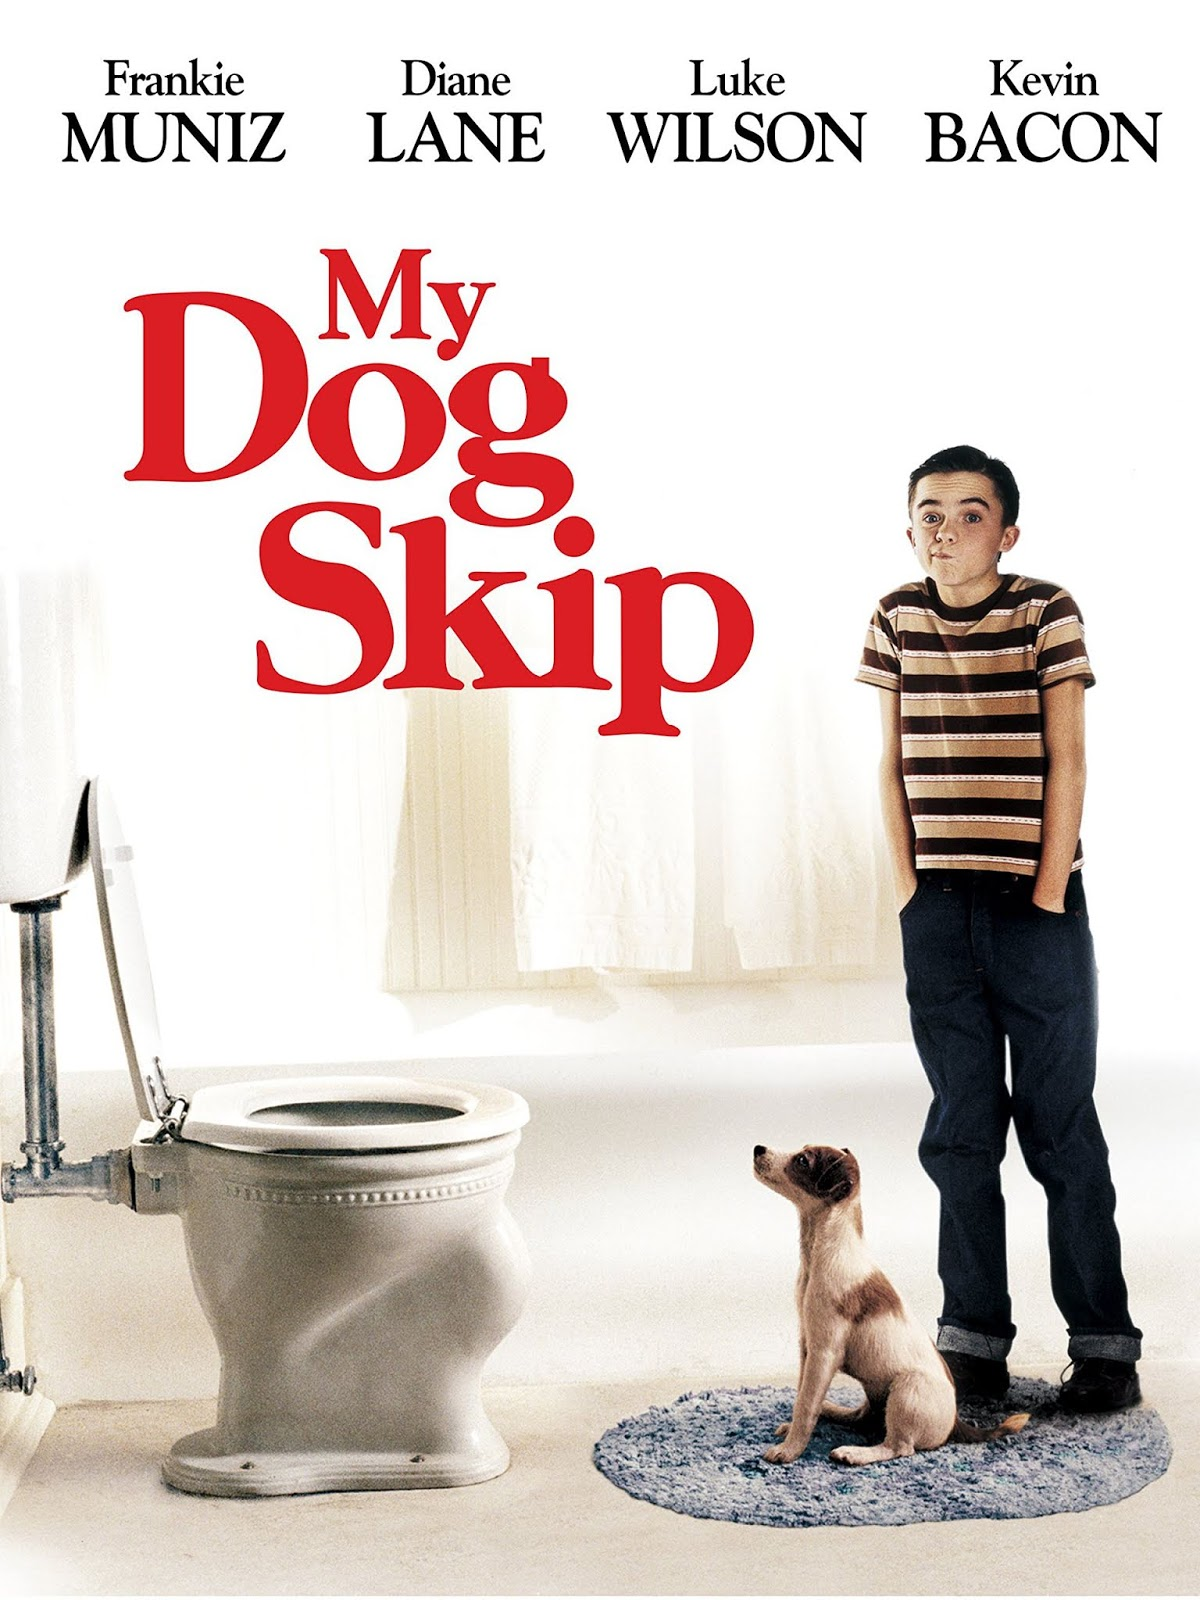 MY DOG SKIP (2000) MOVIE TAMIL DUBBED HD